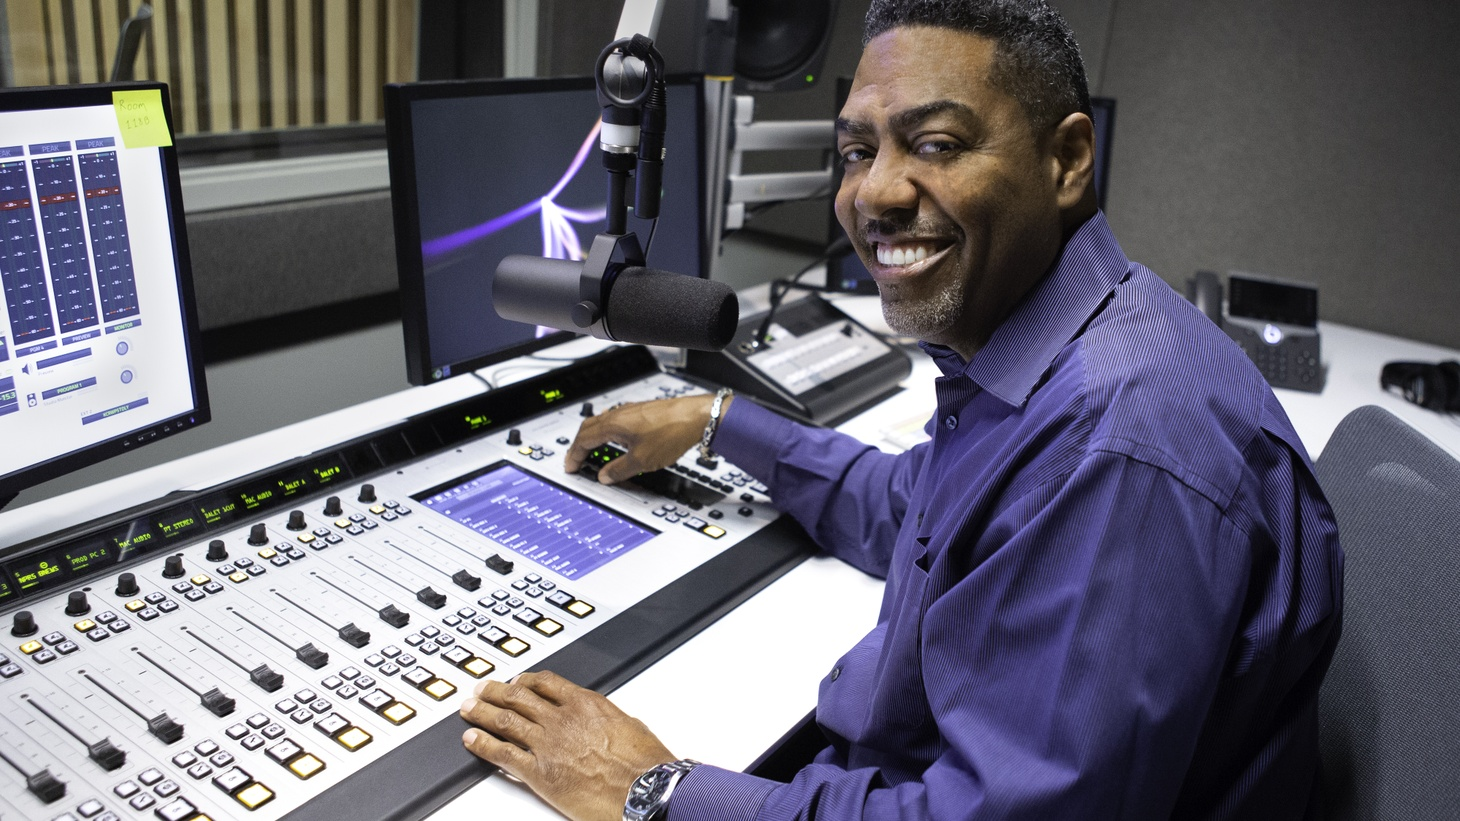 LeRoy Downs has been active in the jazz industry for the past twenty years, producing jazz radio programs, hosting festivals, and curating concerts.